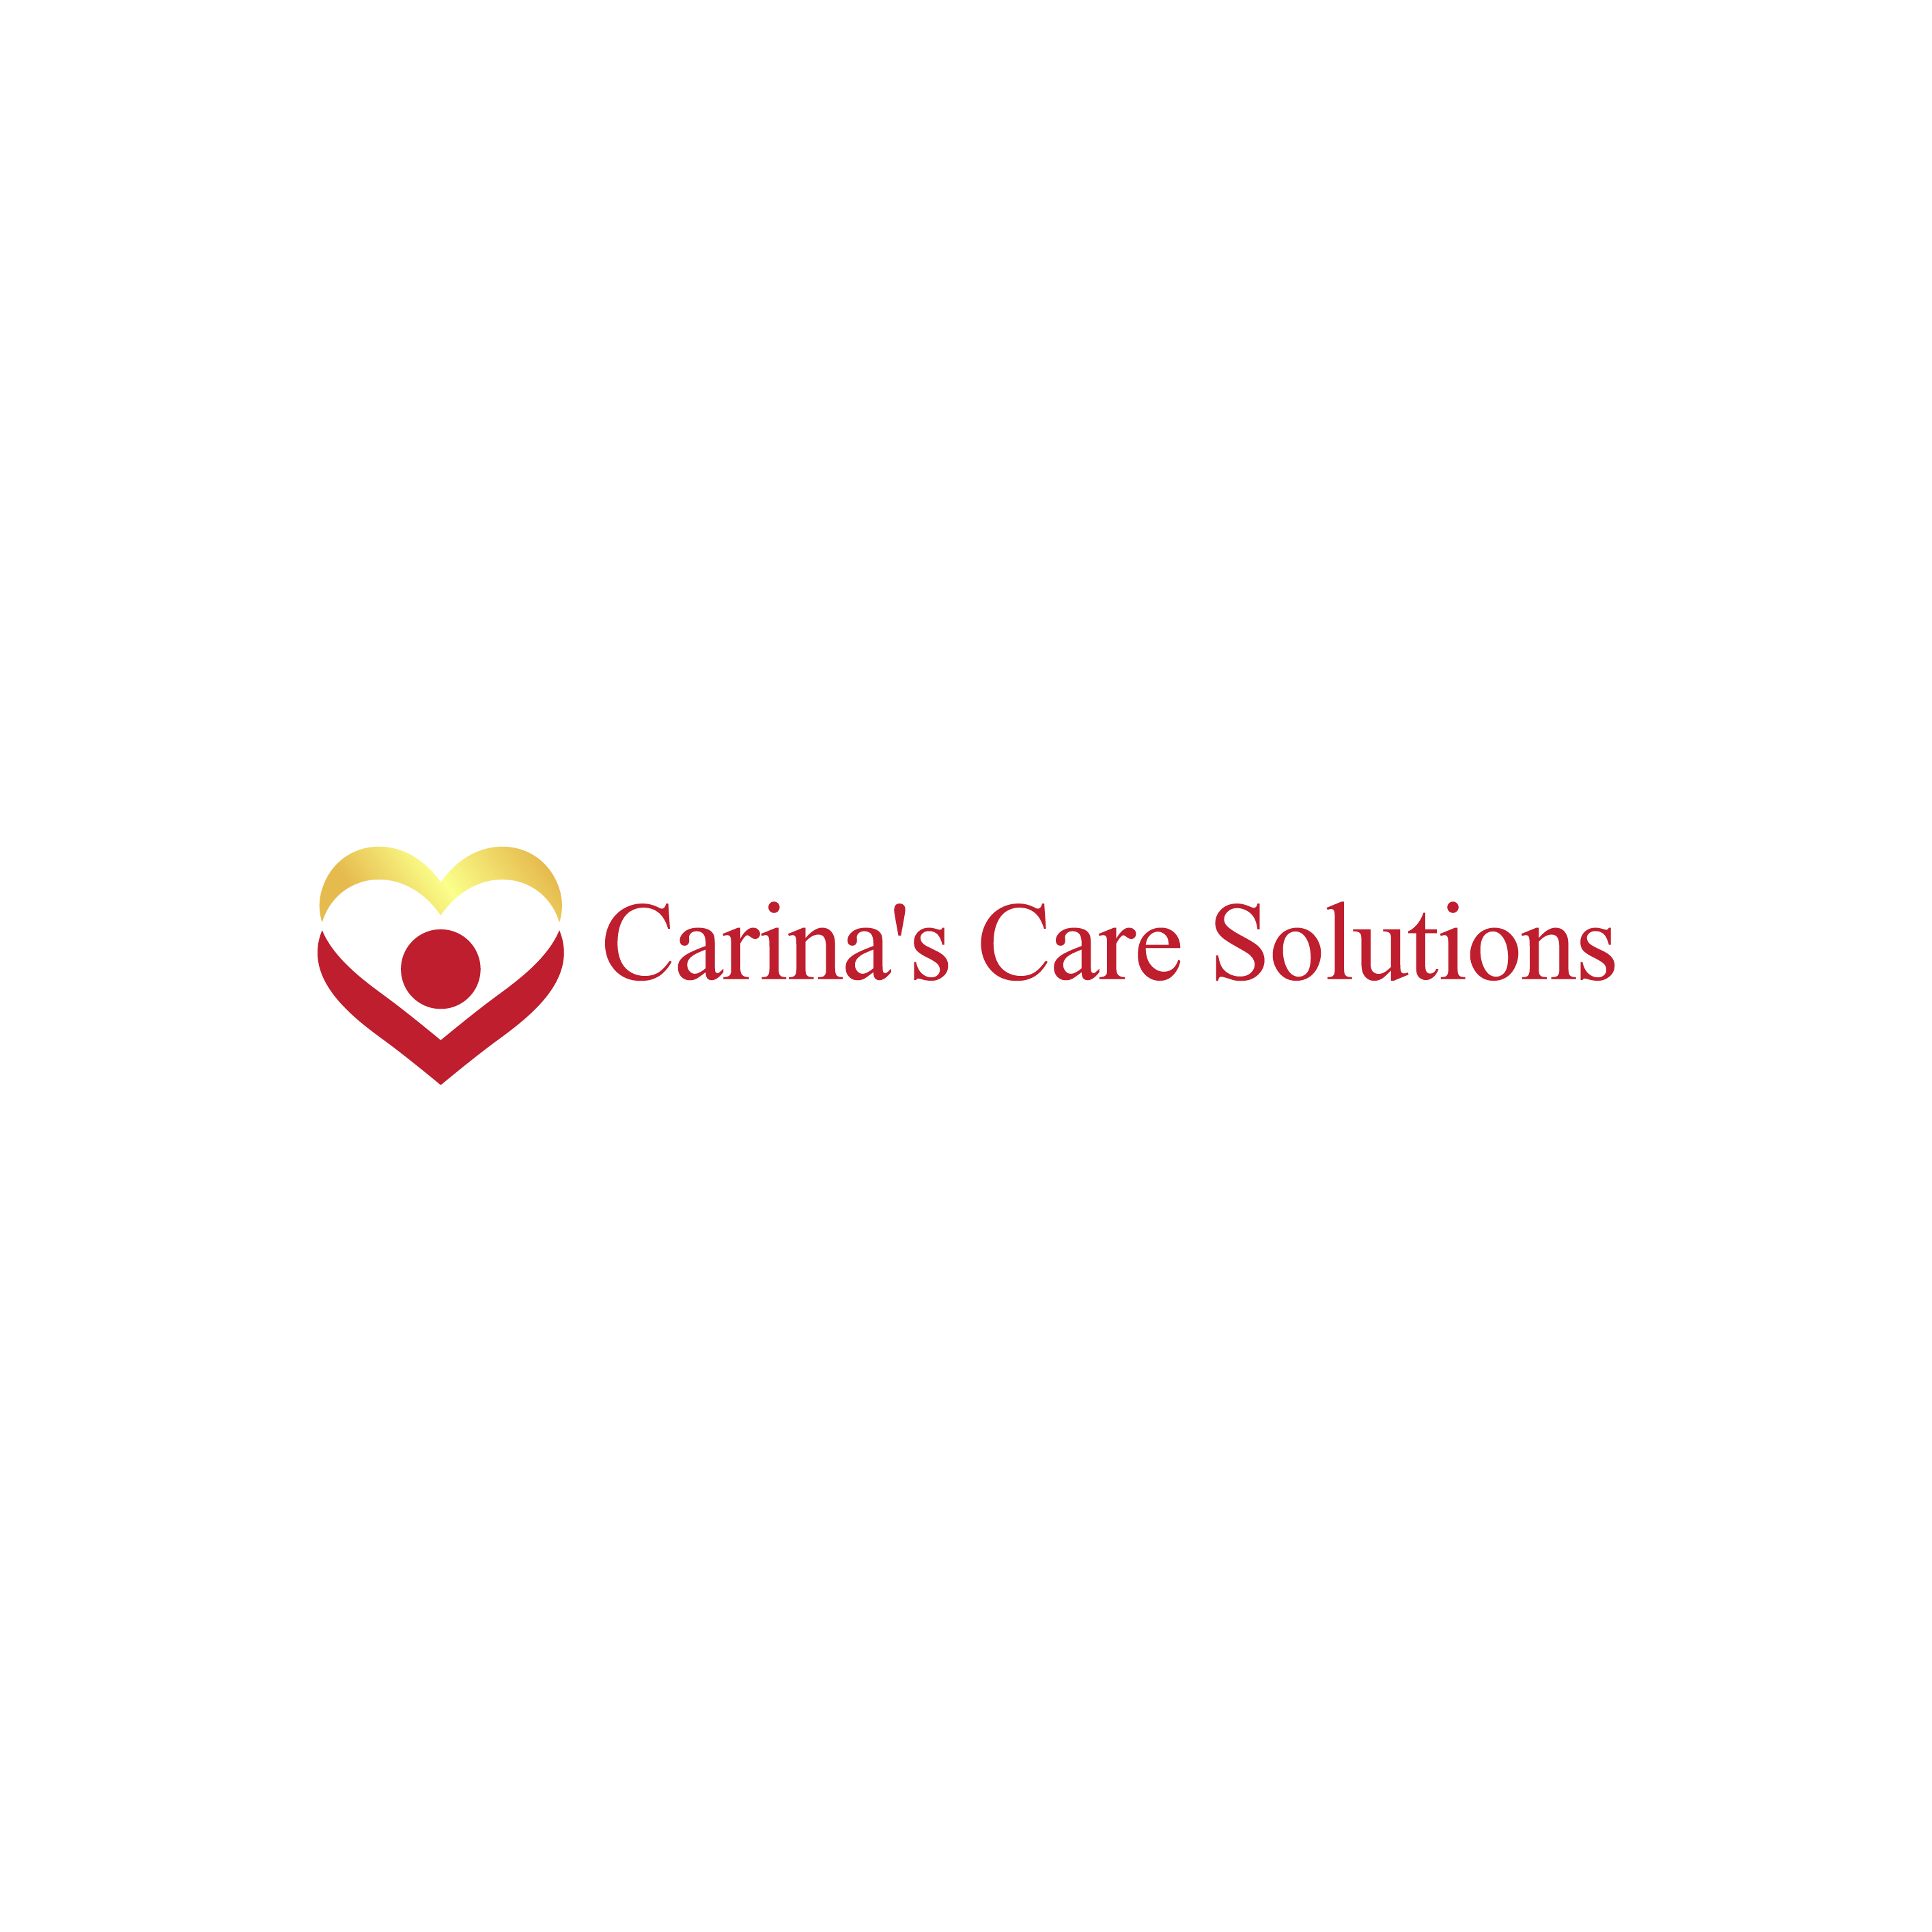 Carina's Care Solutions